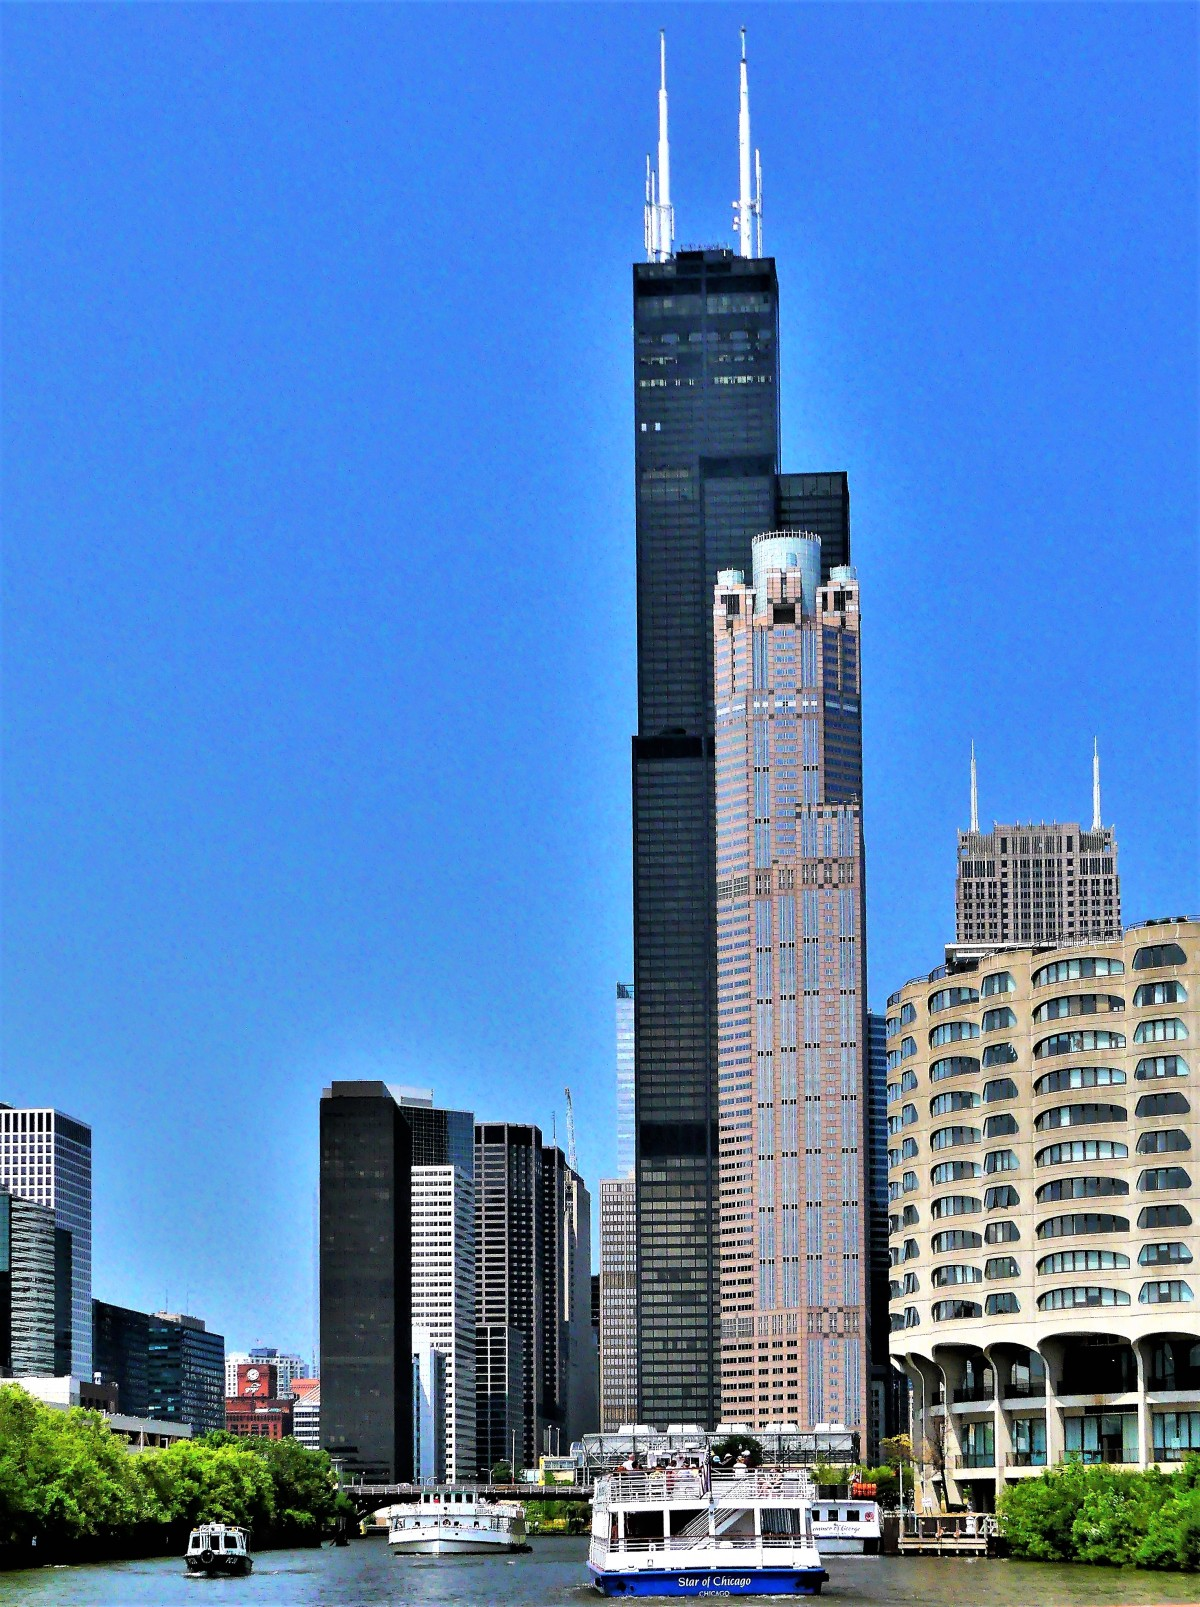 Sears or Willis Tower